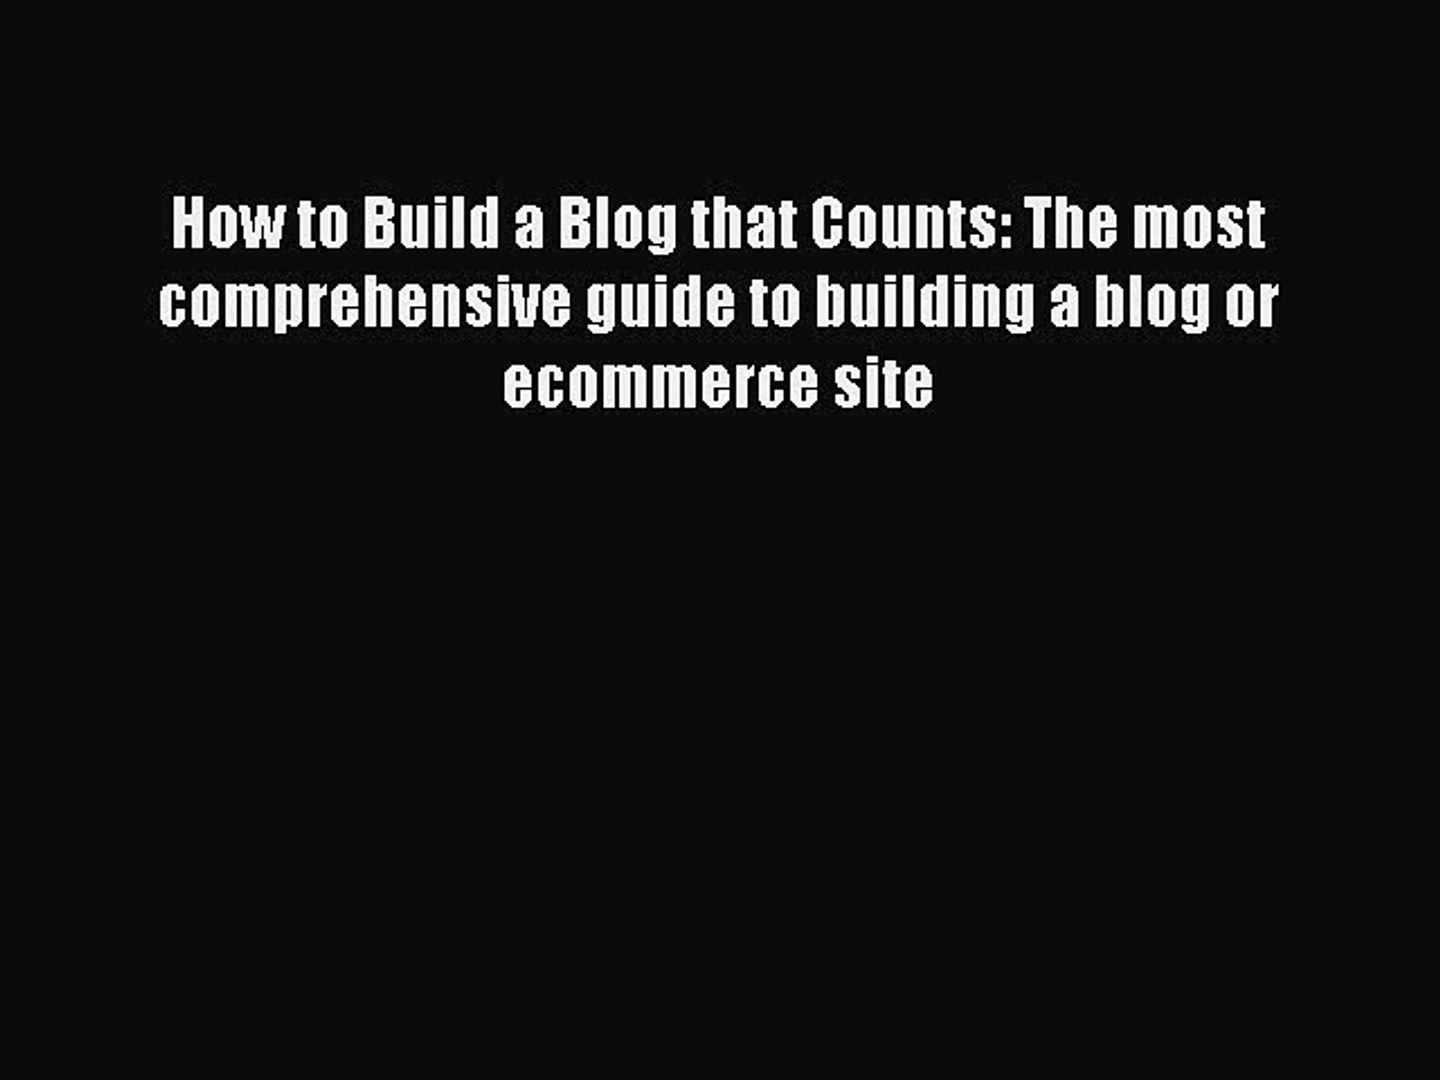 Read How to Build a Blog that Counts: The most comprehensive guide to building a blog or ecommerce